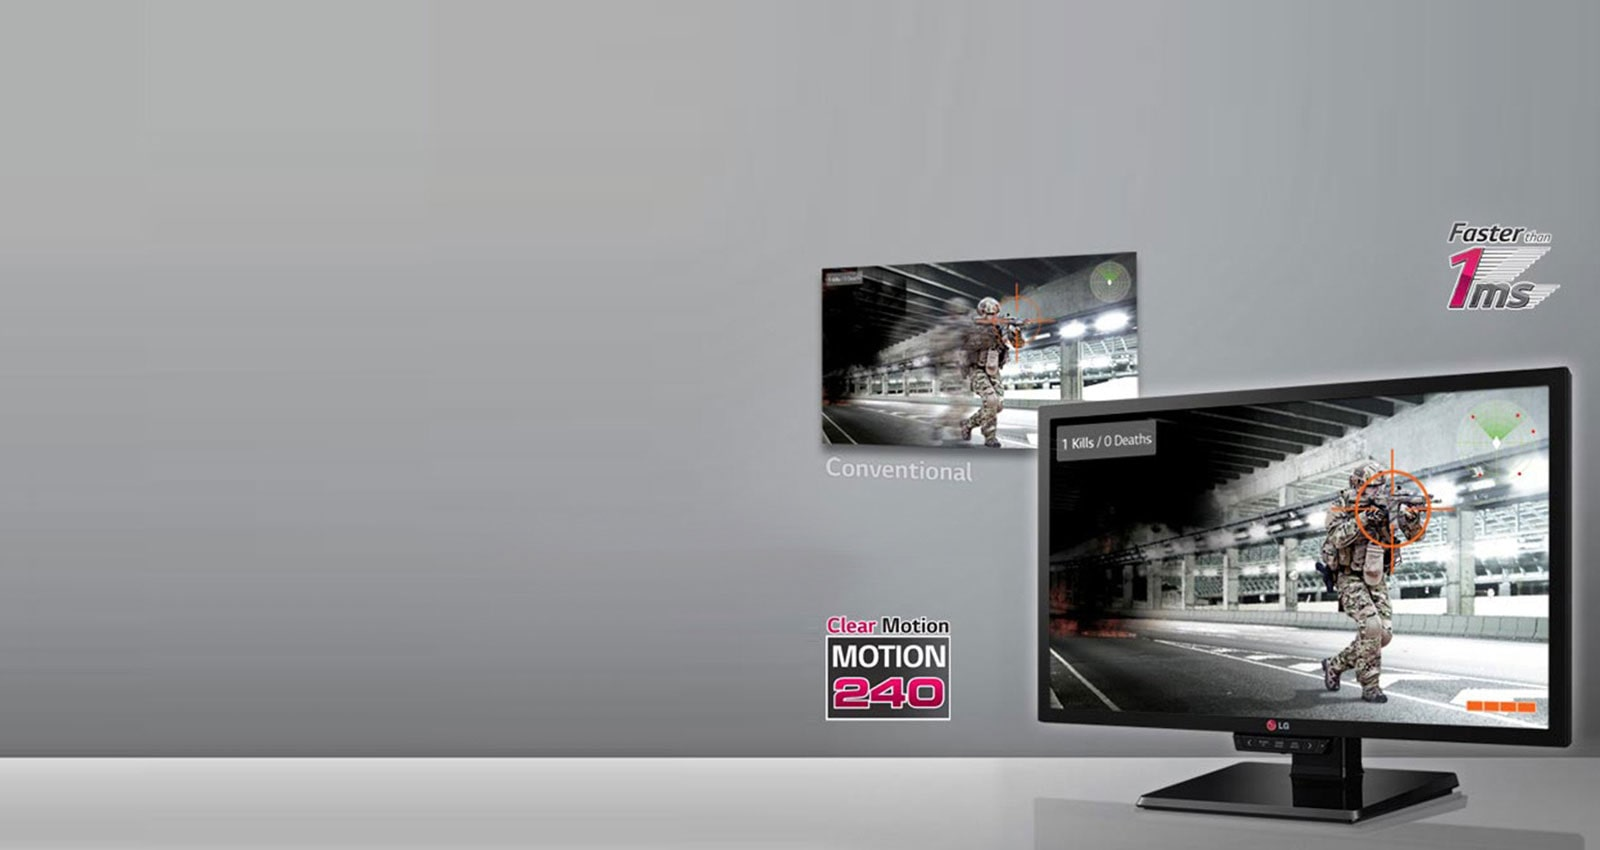 Computer Products - LCD, LED, IPS Monitor & More | LG India